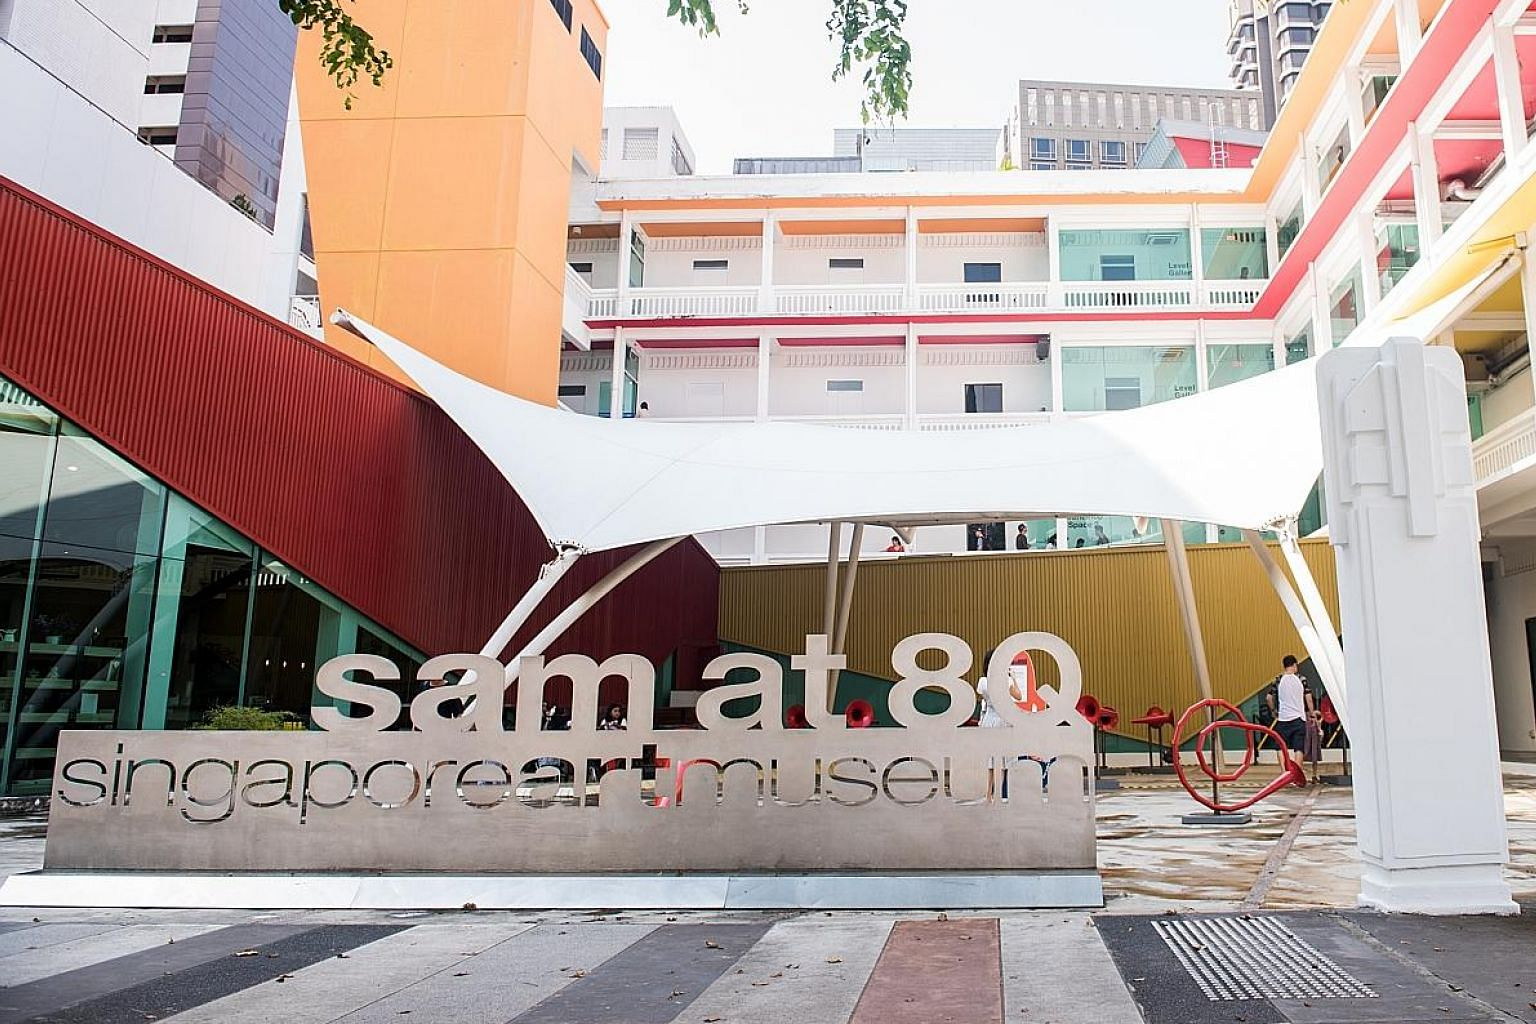 Imaginarium is on at the Singapore Art Museum's second building at 8 Queen Street. It will host exhibitions until the end of the year.